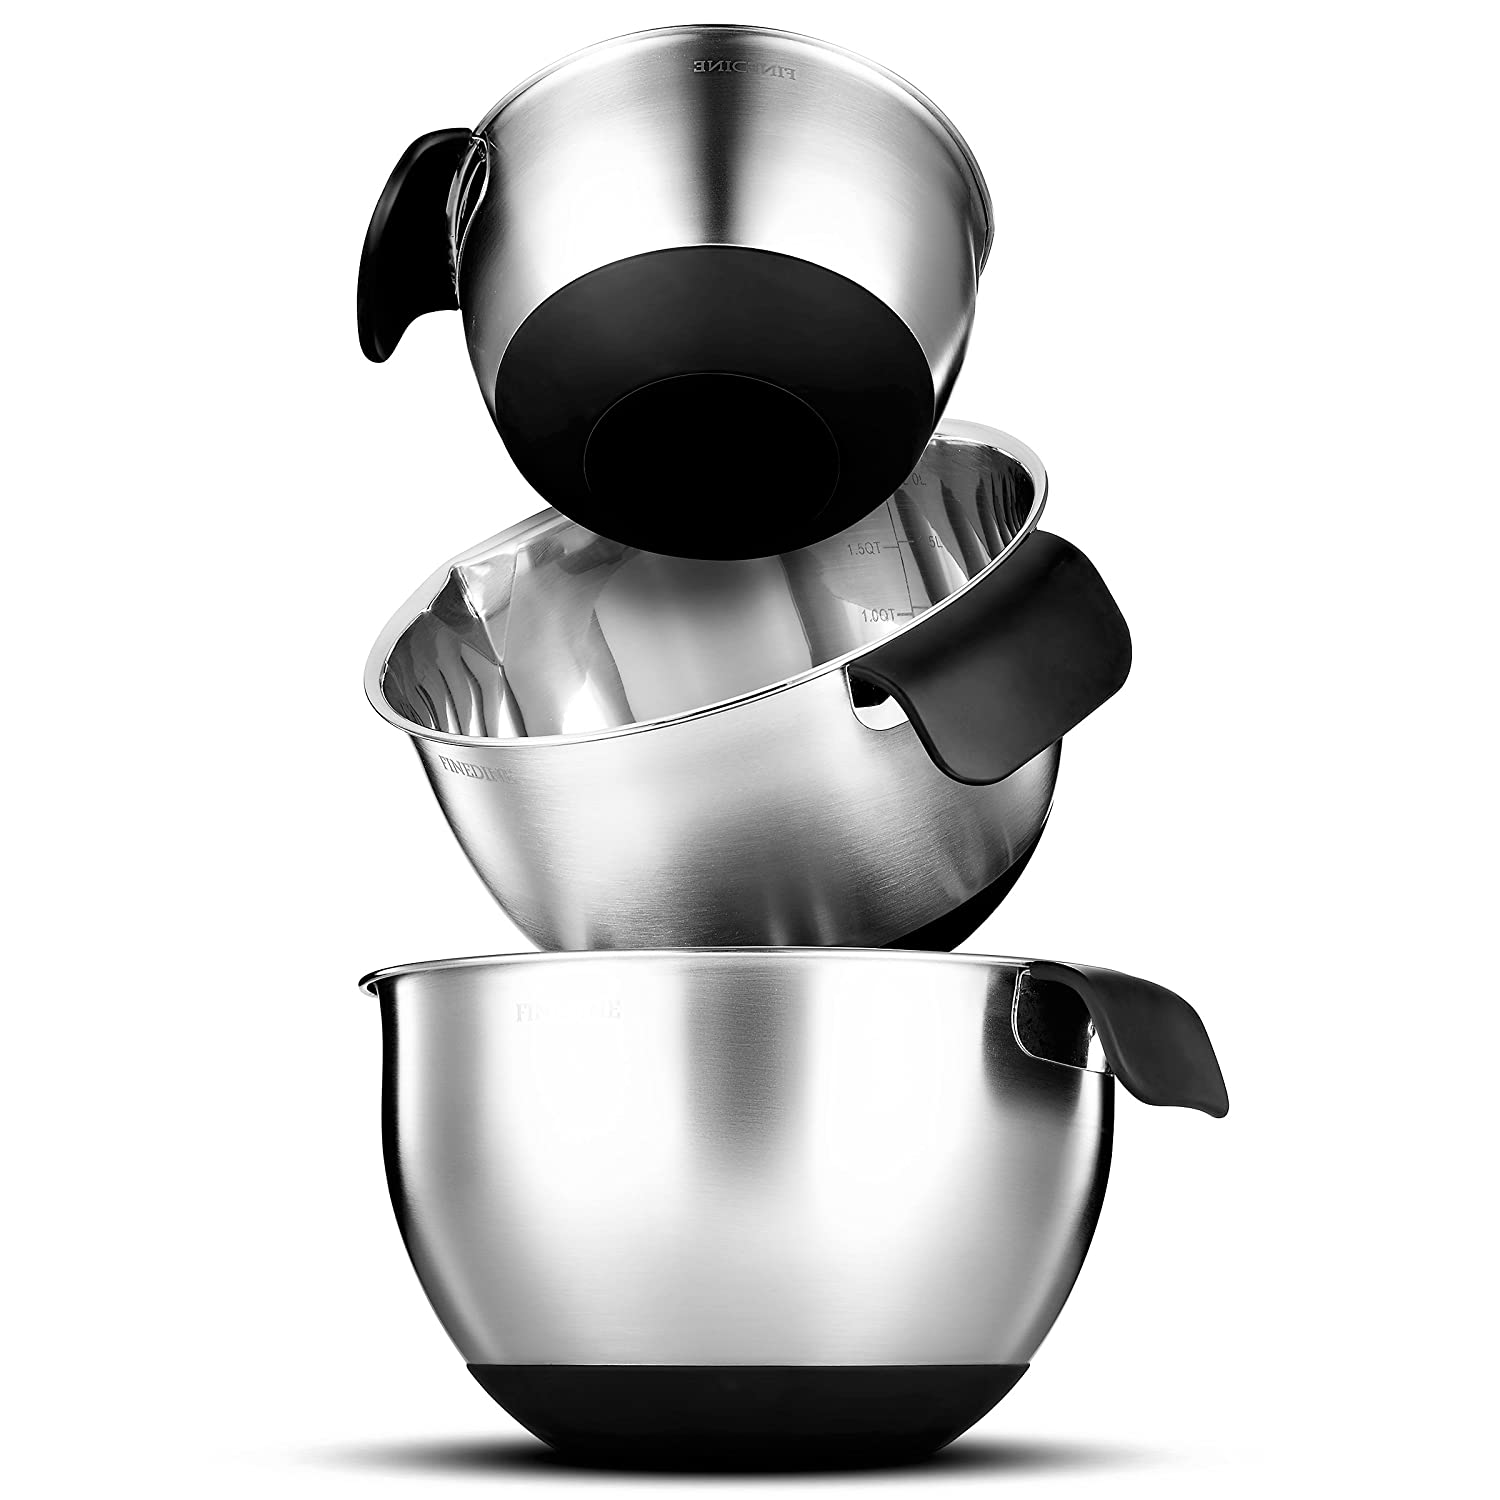 Easy Pouring Spout Modern Nesting Bowls Set with Measurement Marks Skid Free Bottom 1.5-2 FineDine Premium Grade Stainless Steel Mixing Bowls With Comfortable Grip Handle 2.5 Quart FD-S107 Set of 3